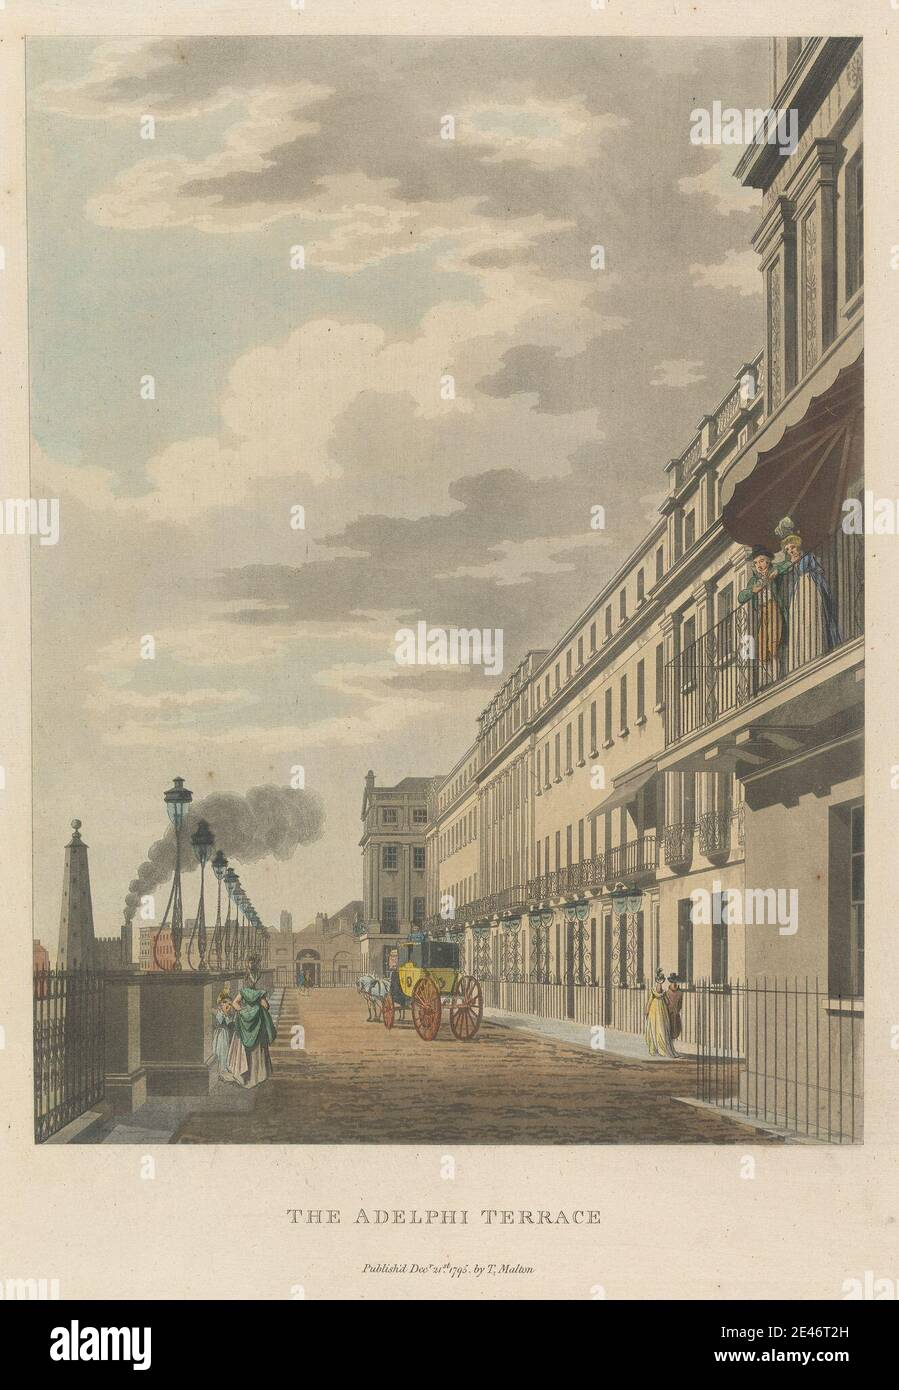 /'Adelphi Terrace/' London Decorative view by William TOMBLESON 1835 old print